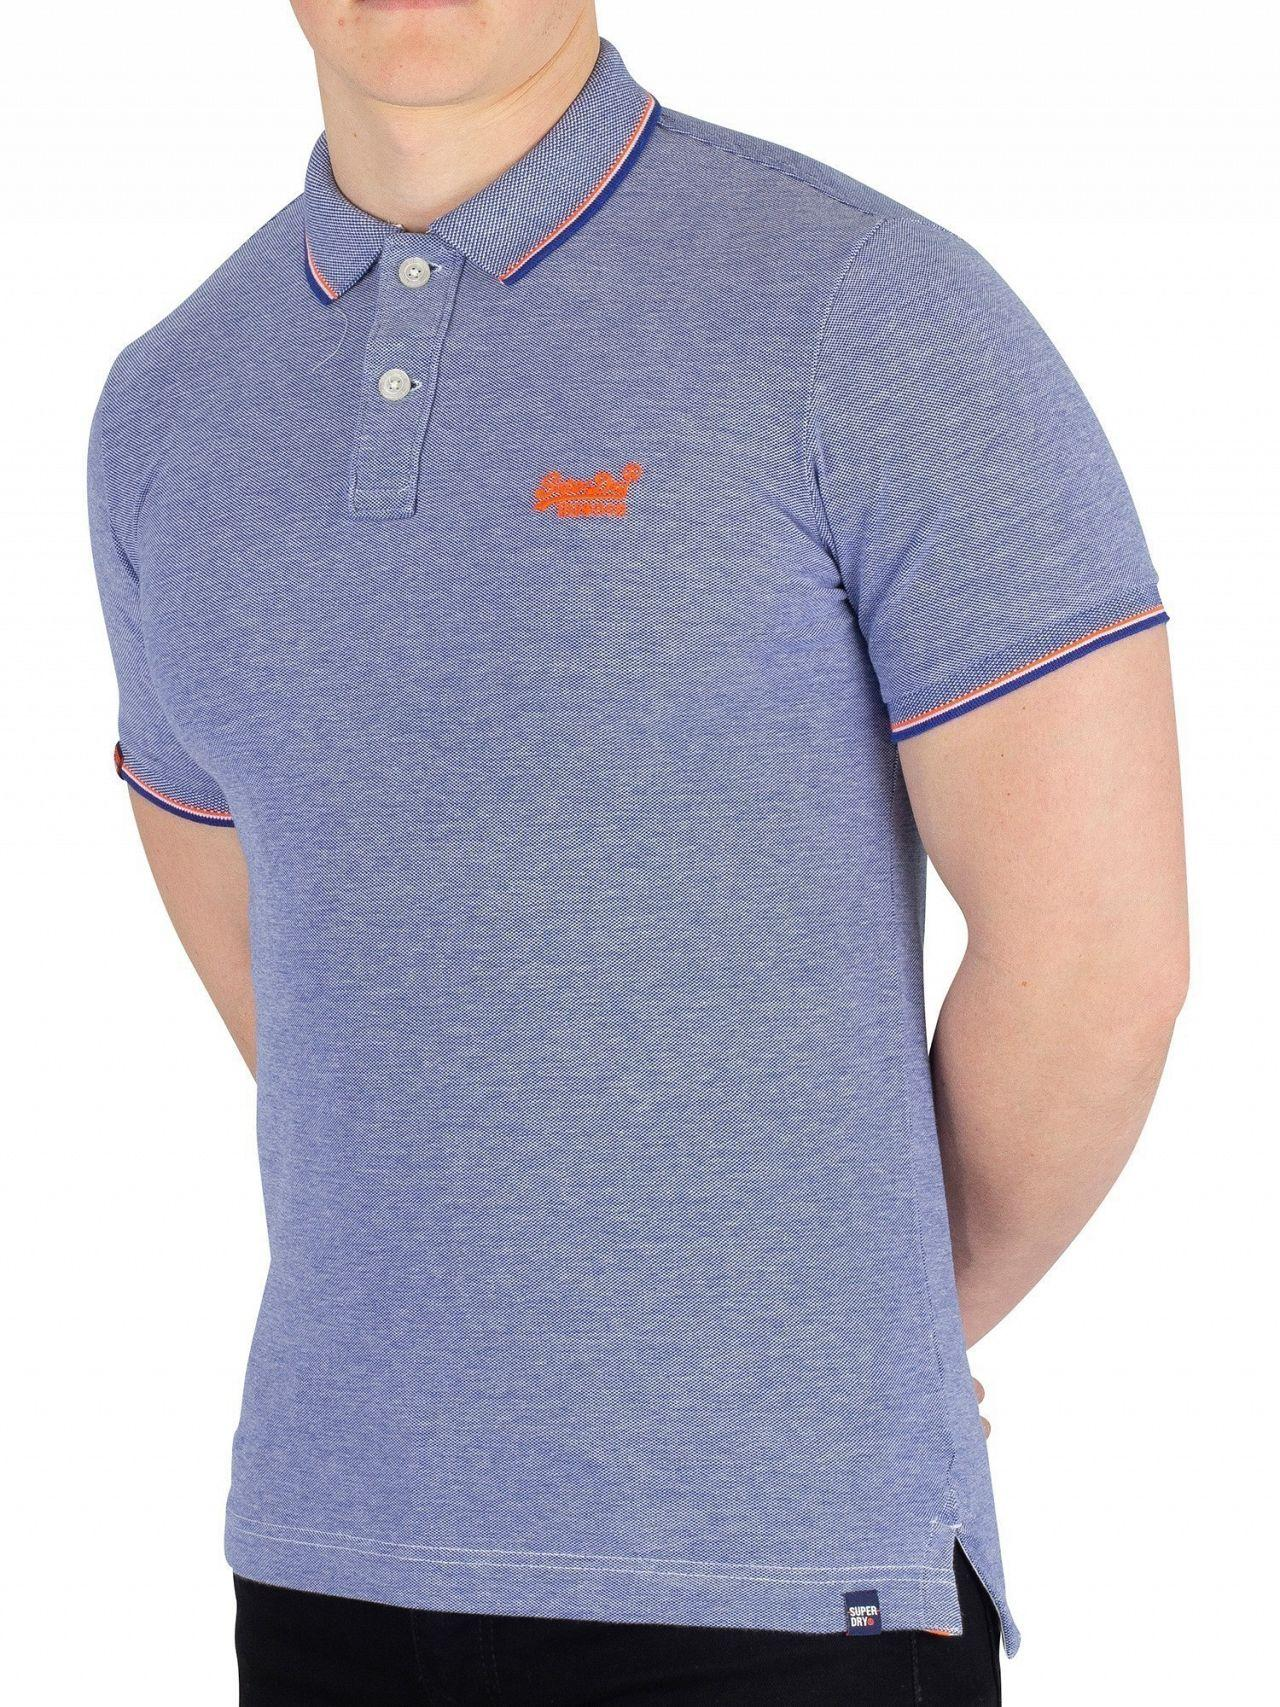 5204a502fdb8 Superdry Cobalt/white Classic Poolside Pique Poloshirt in Blue for ...